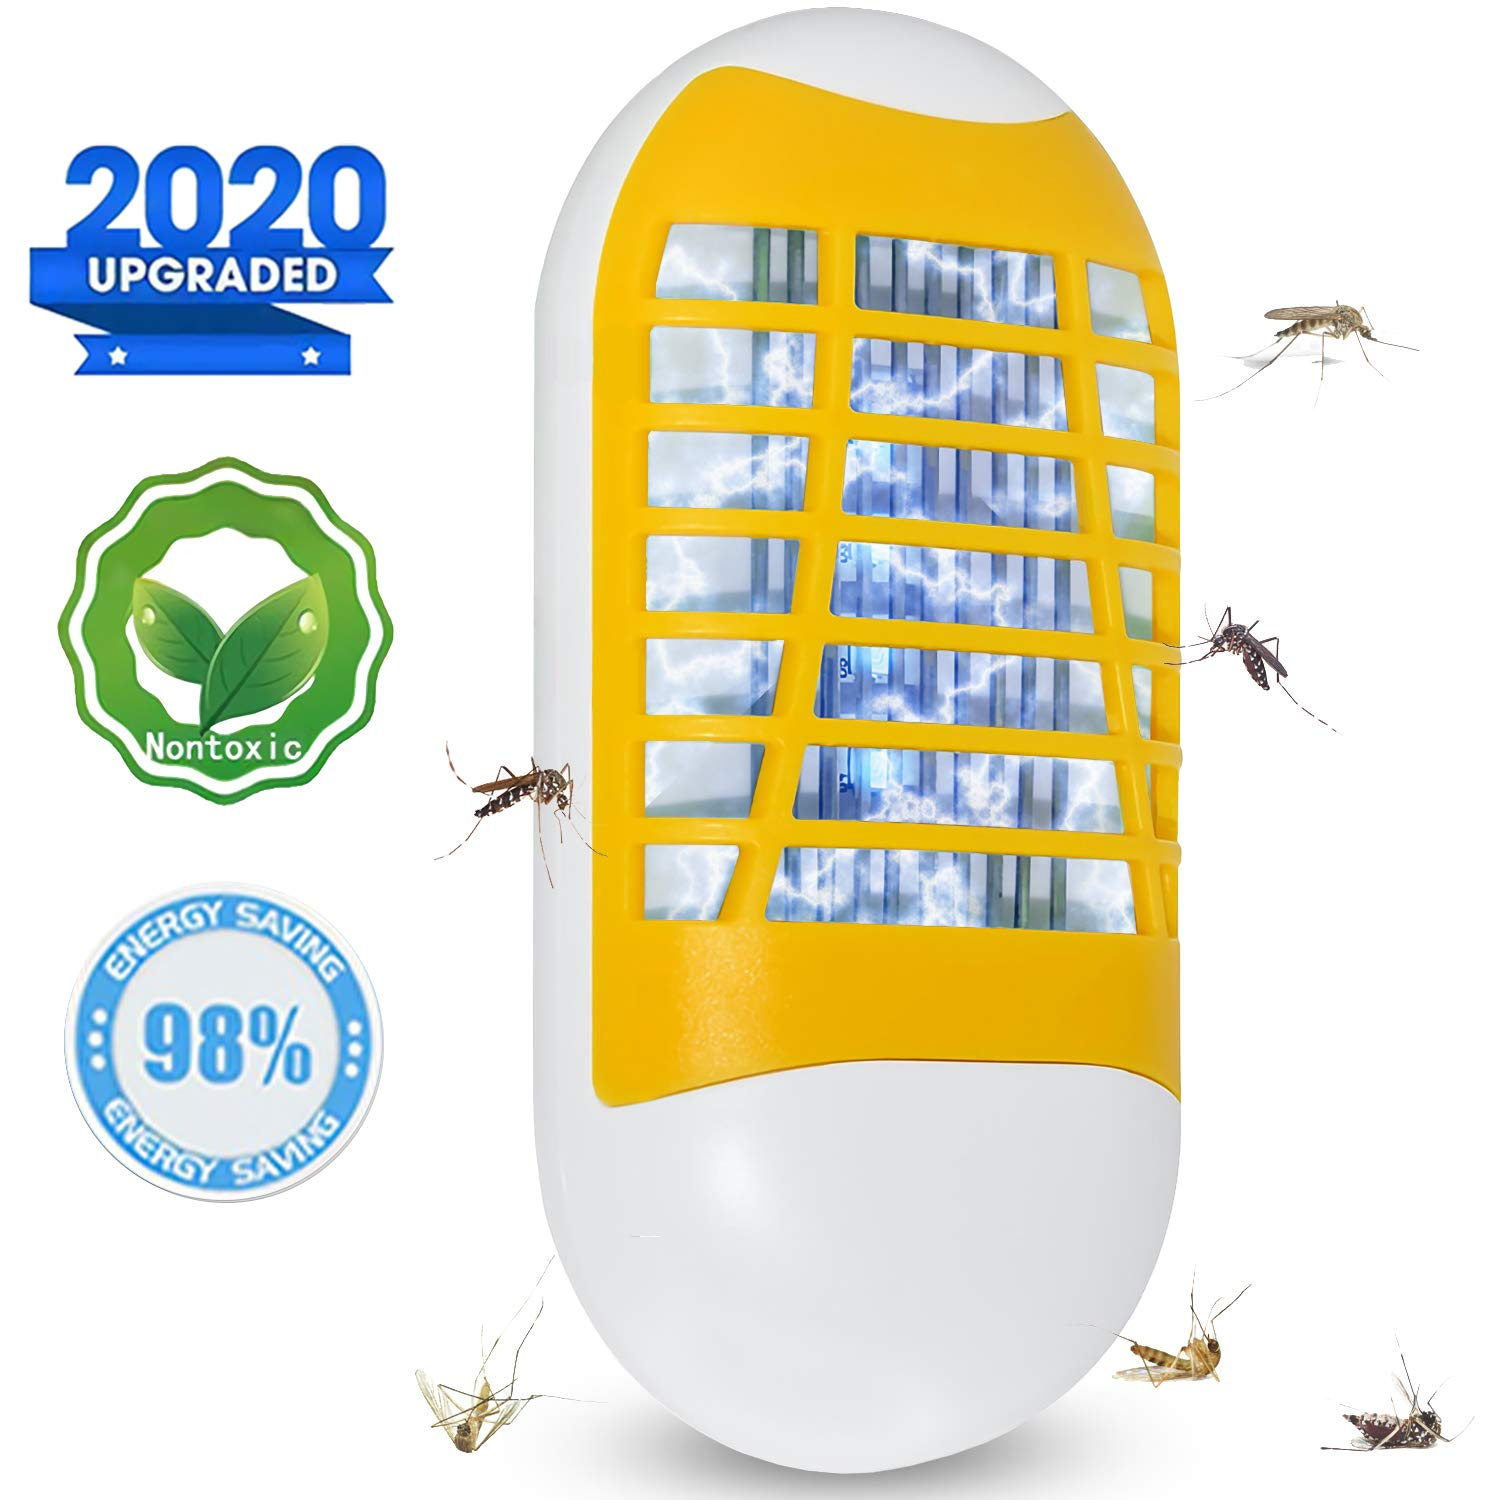 Bug Zapper Plug-in Electronic Insect Killer Night Light, [2020 Upgraded] Mosquito Killer Lamp Pest Repellent, Eliminates Gnats, Fruit Flies& Flying Pests